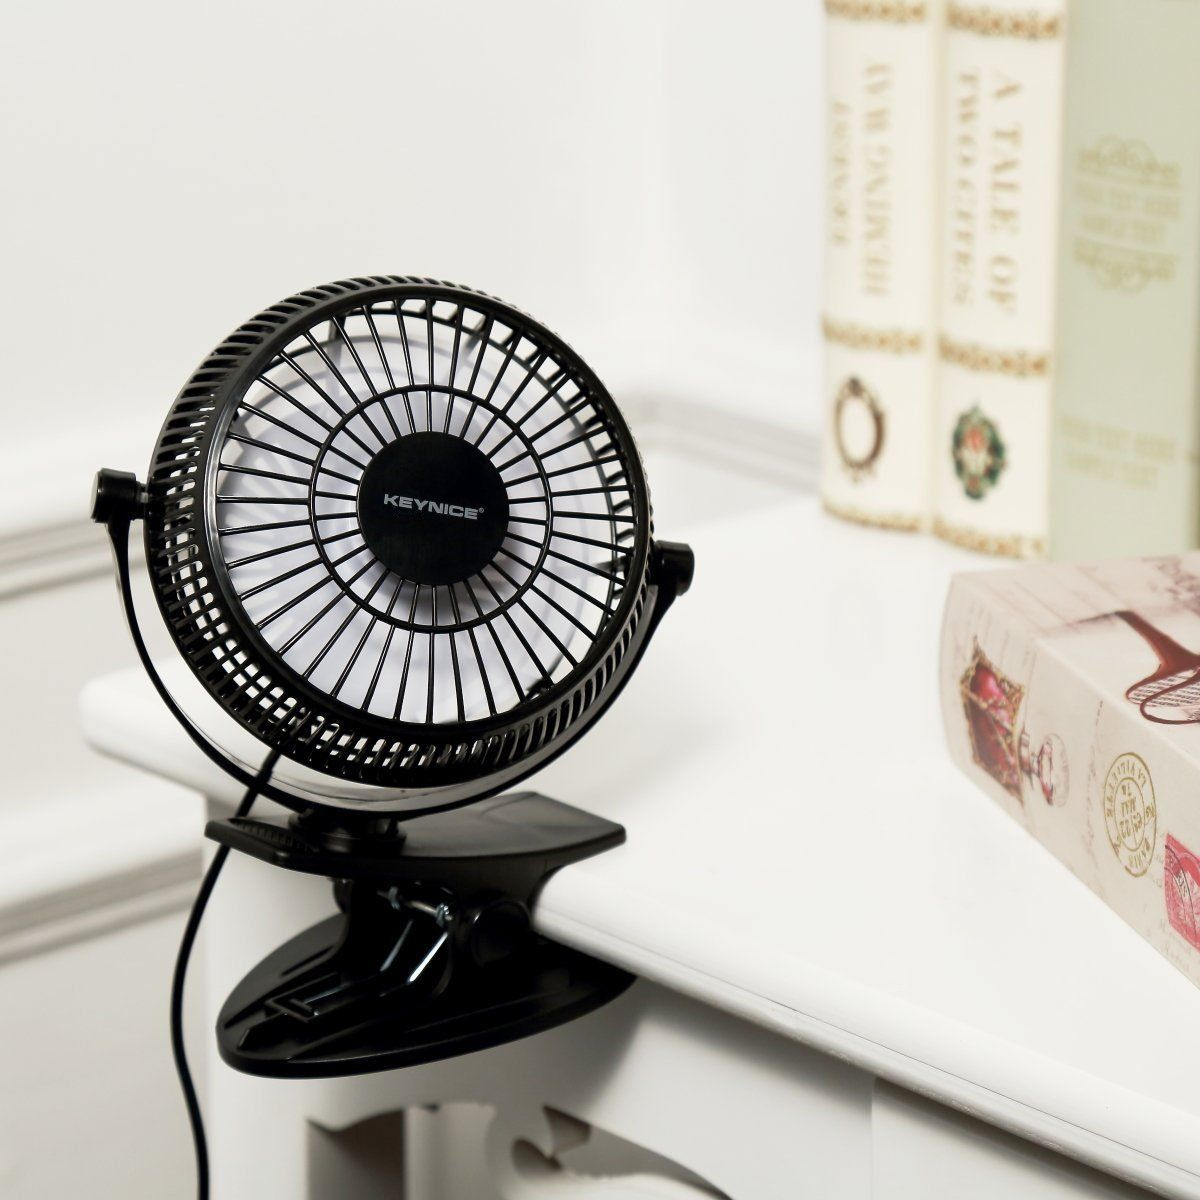 Keynice USB Clip Desk Personal Fan - 2 in 1 Applications, Strong Wind, 4 Inch 2 Speed Portable Cooling Fan USB Powered by NetBook, PC